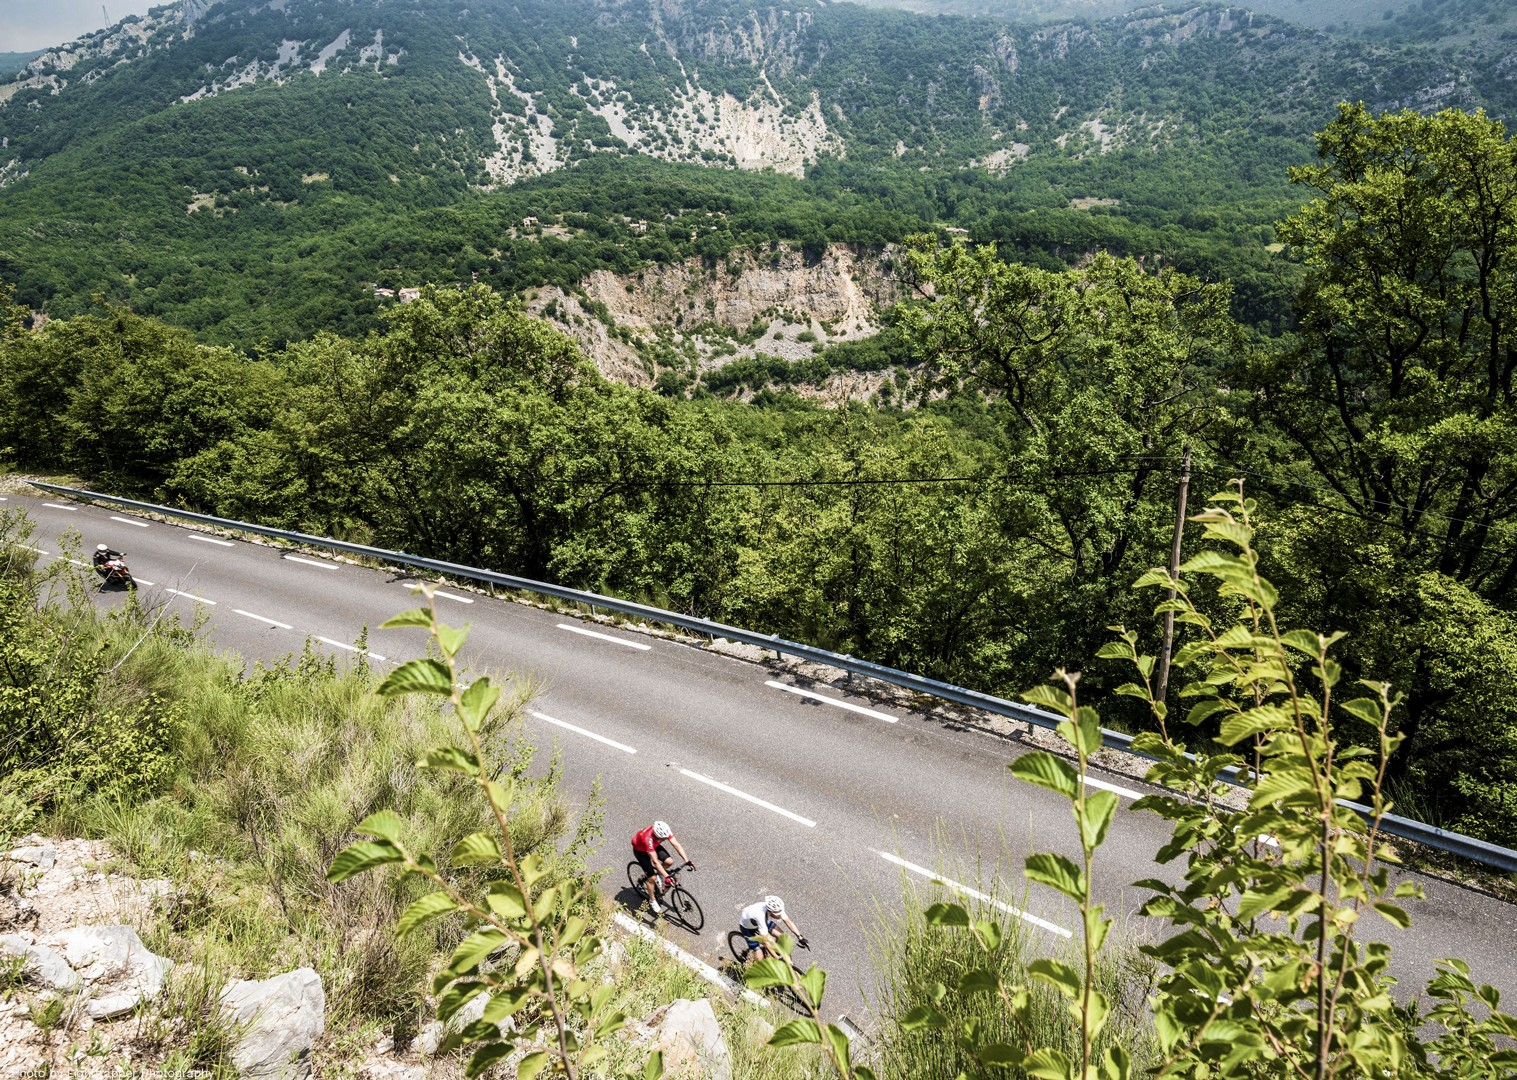 cote-d'azur-france-cycle-medterranean-sea -holiday-road.jpg - NEW! France - Provence - Alpes Maritimes - Road Cycling